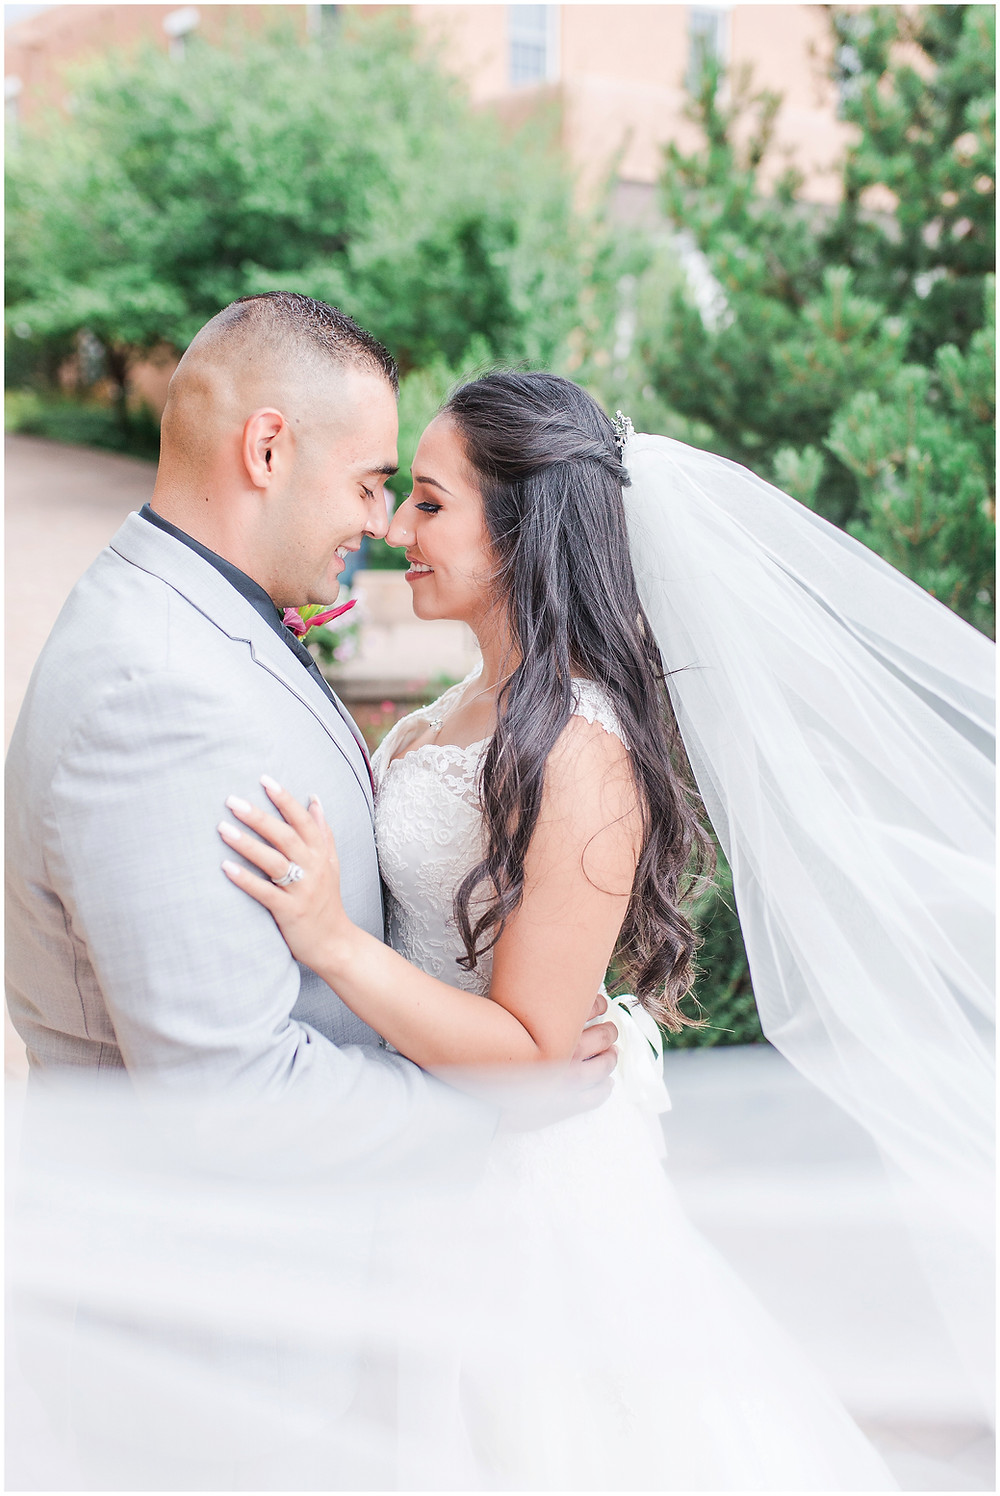 New Mexico wedding photographer. Santa fe wedding photographer. Albuquerque wedding photographer. Maura Jane Photography. La Fonda santa fe wedding. Santa fe destination wedding. Mexican fiesta wedding. Long Veiled Bride. Cathedral Veil Bride. Hair down Bride. Burgundy wedding colors.